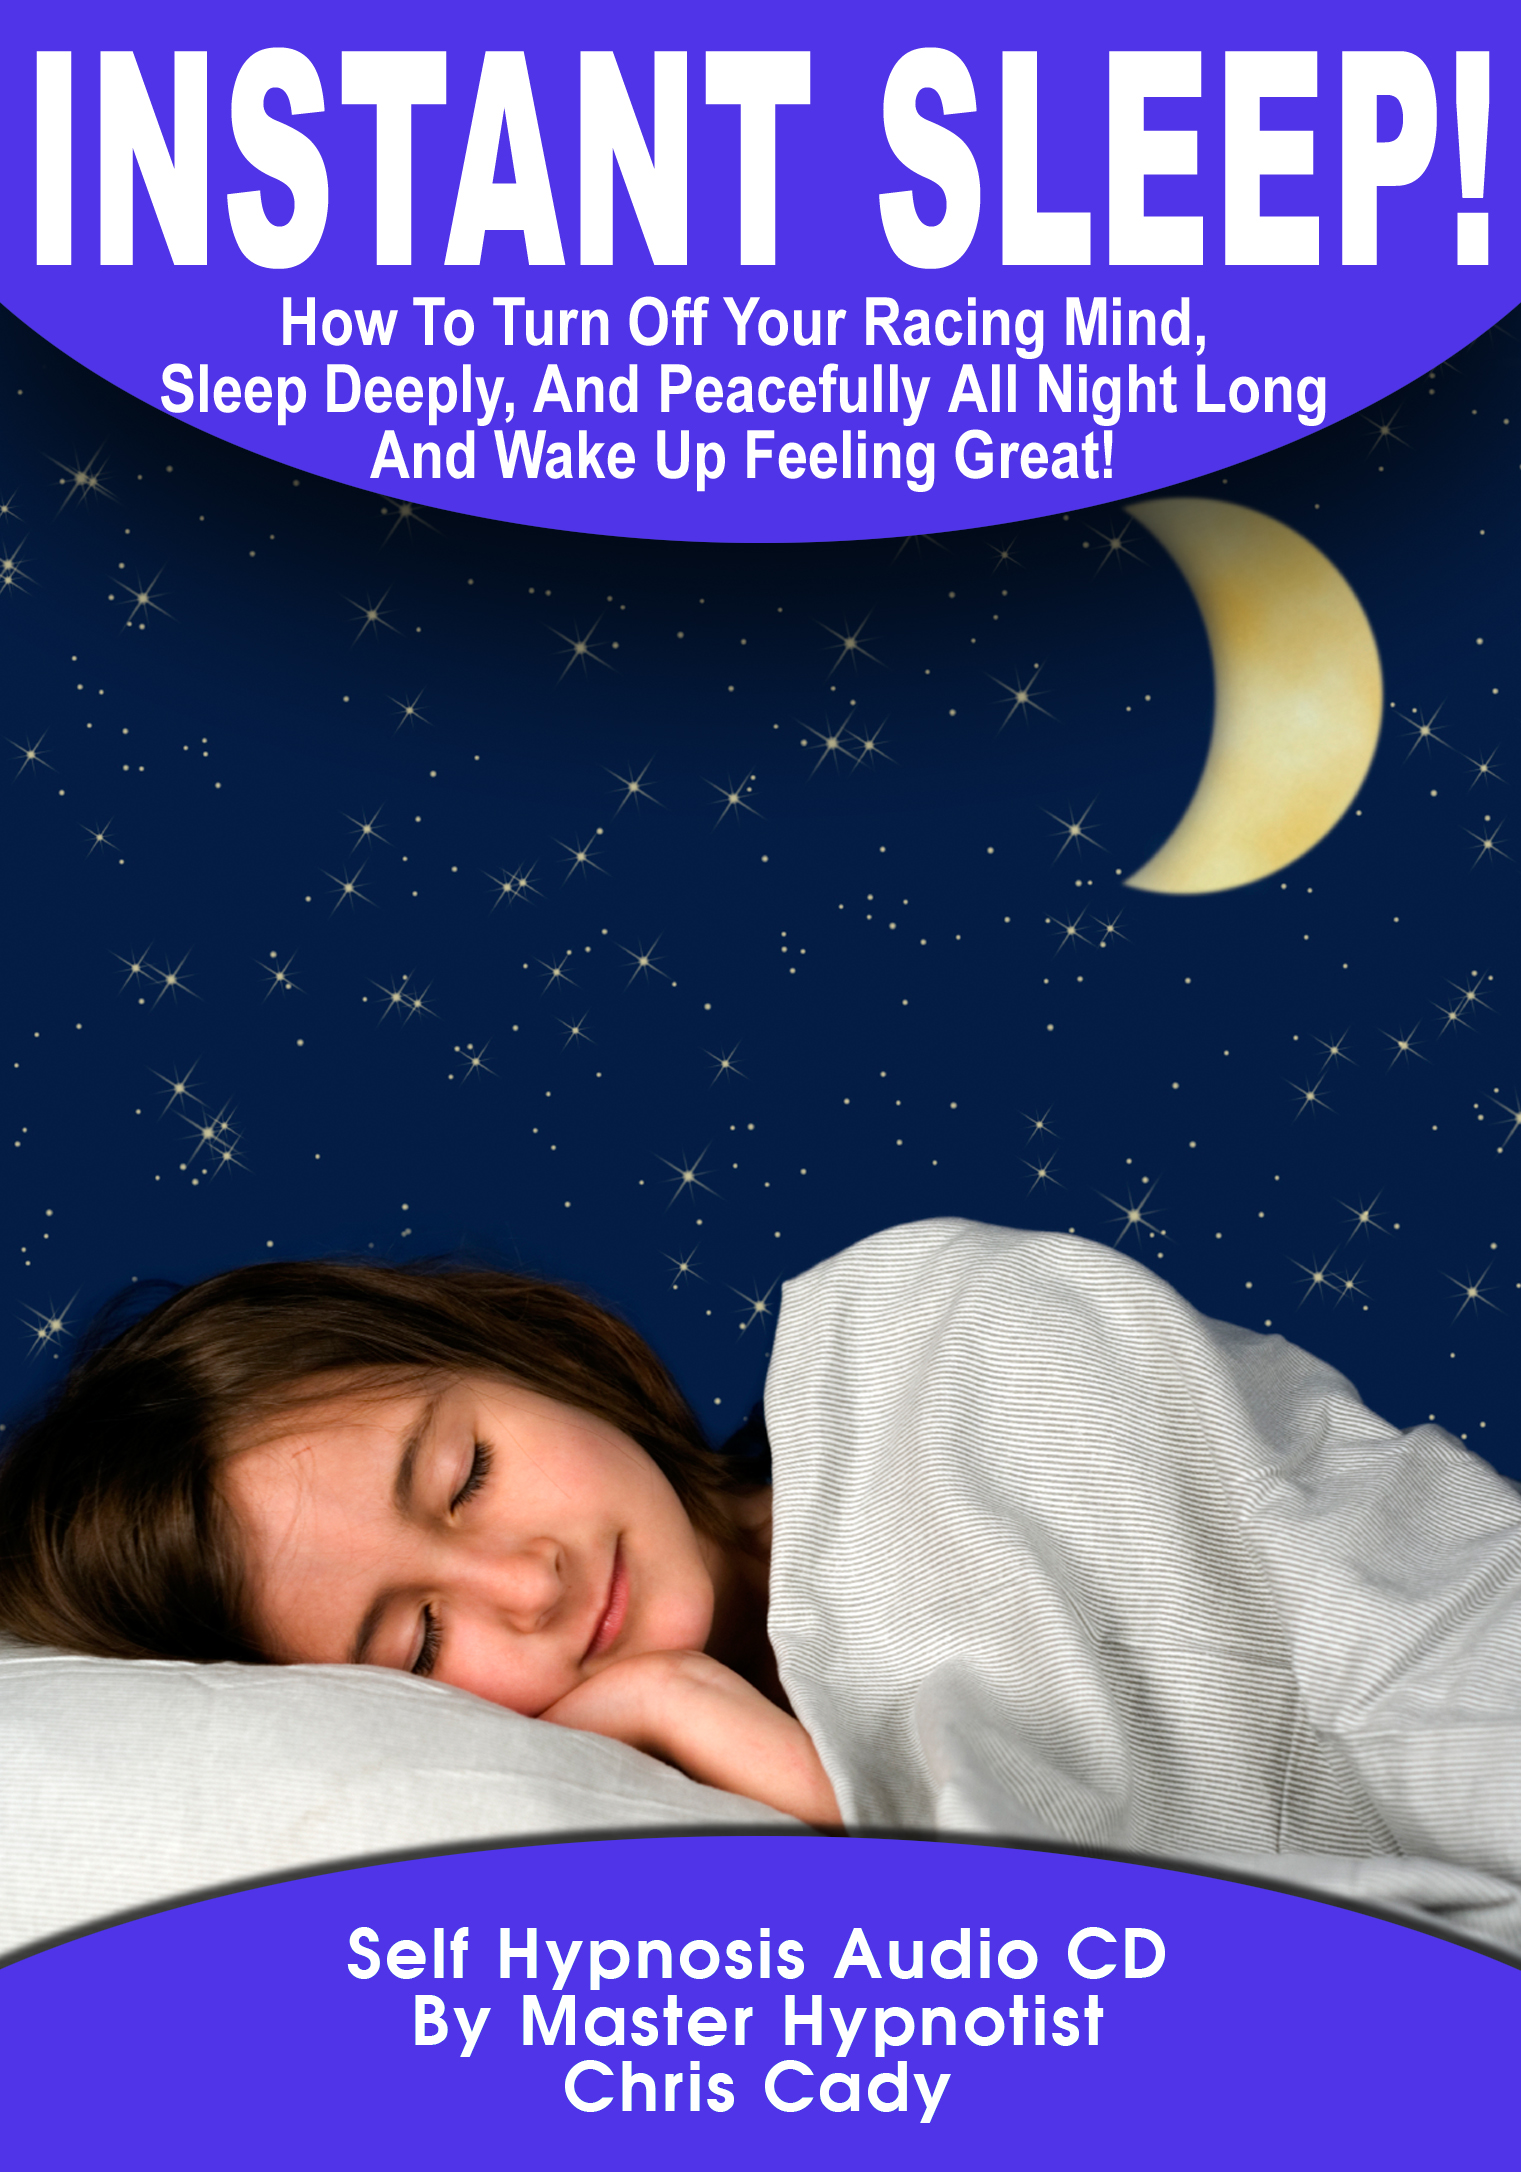 sleep end insomnia with hypnosis cd